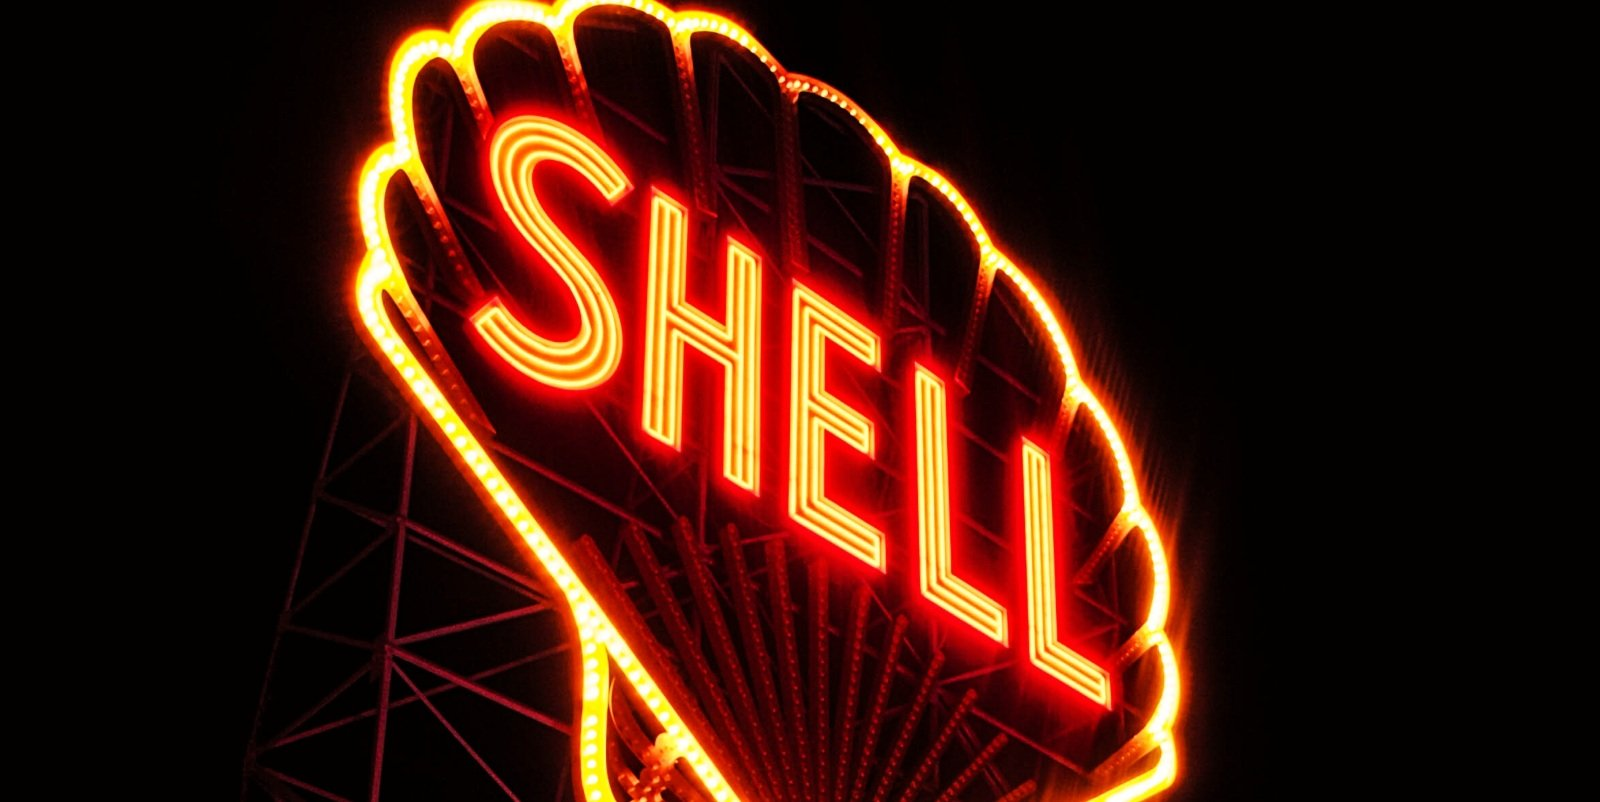 Energy giant Shell discloses data breach after Accellion hack